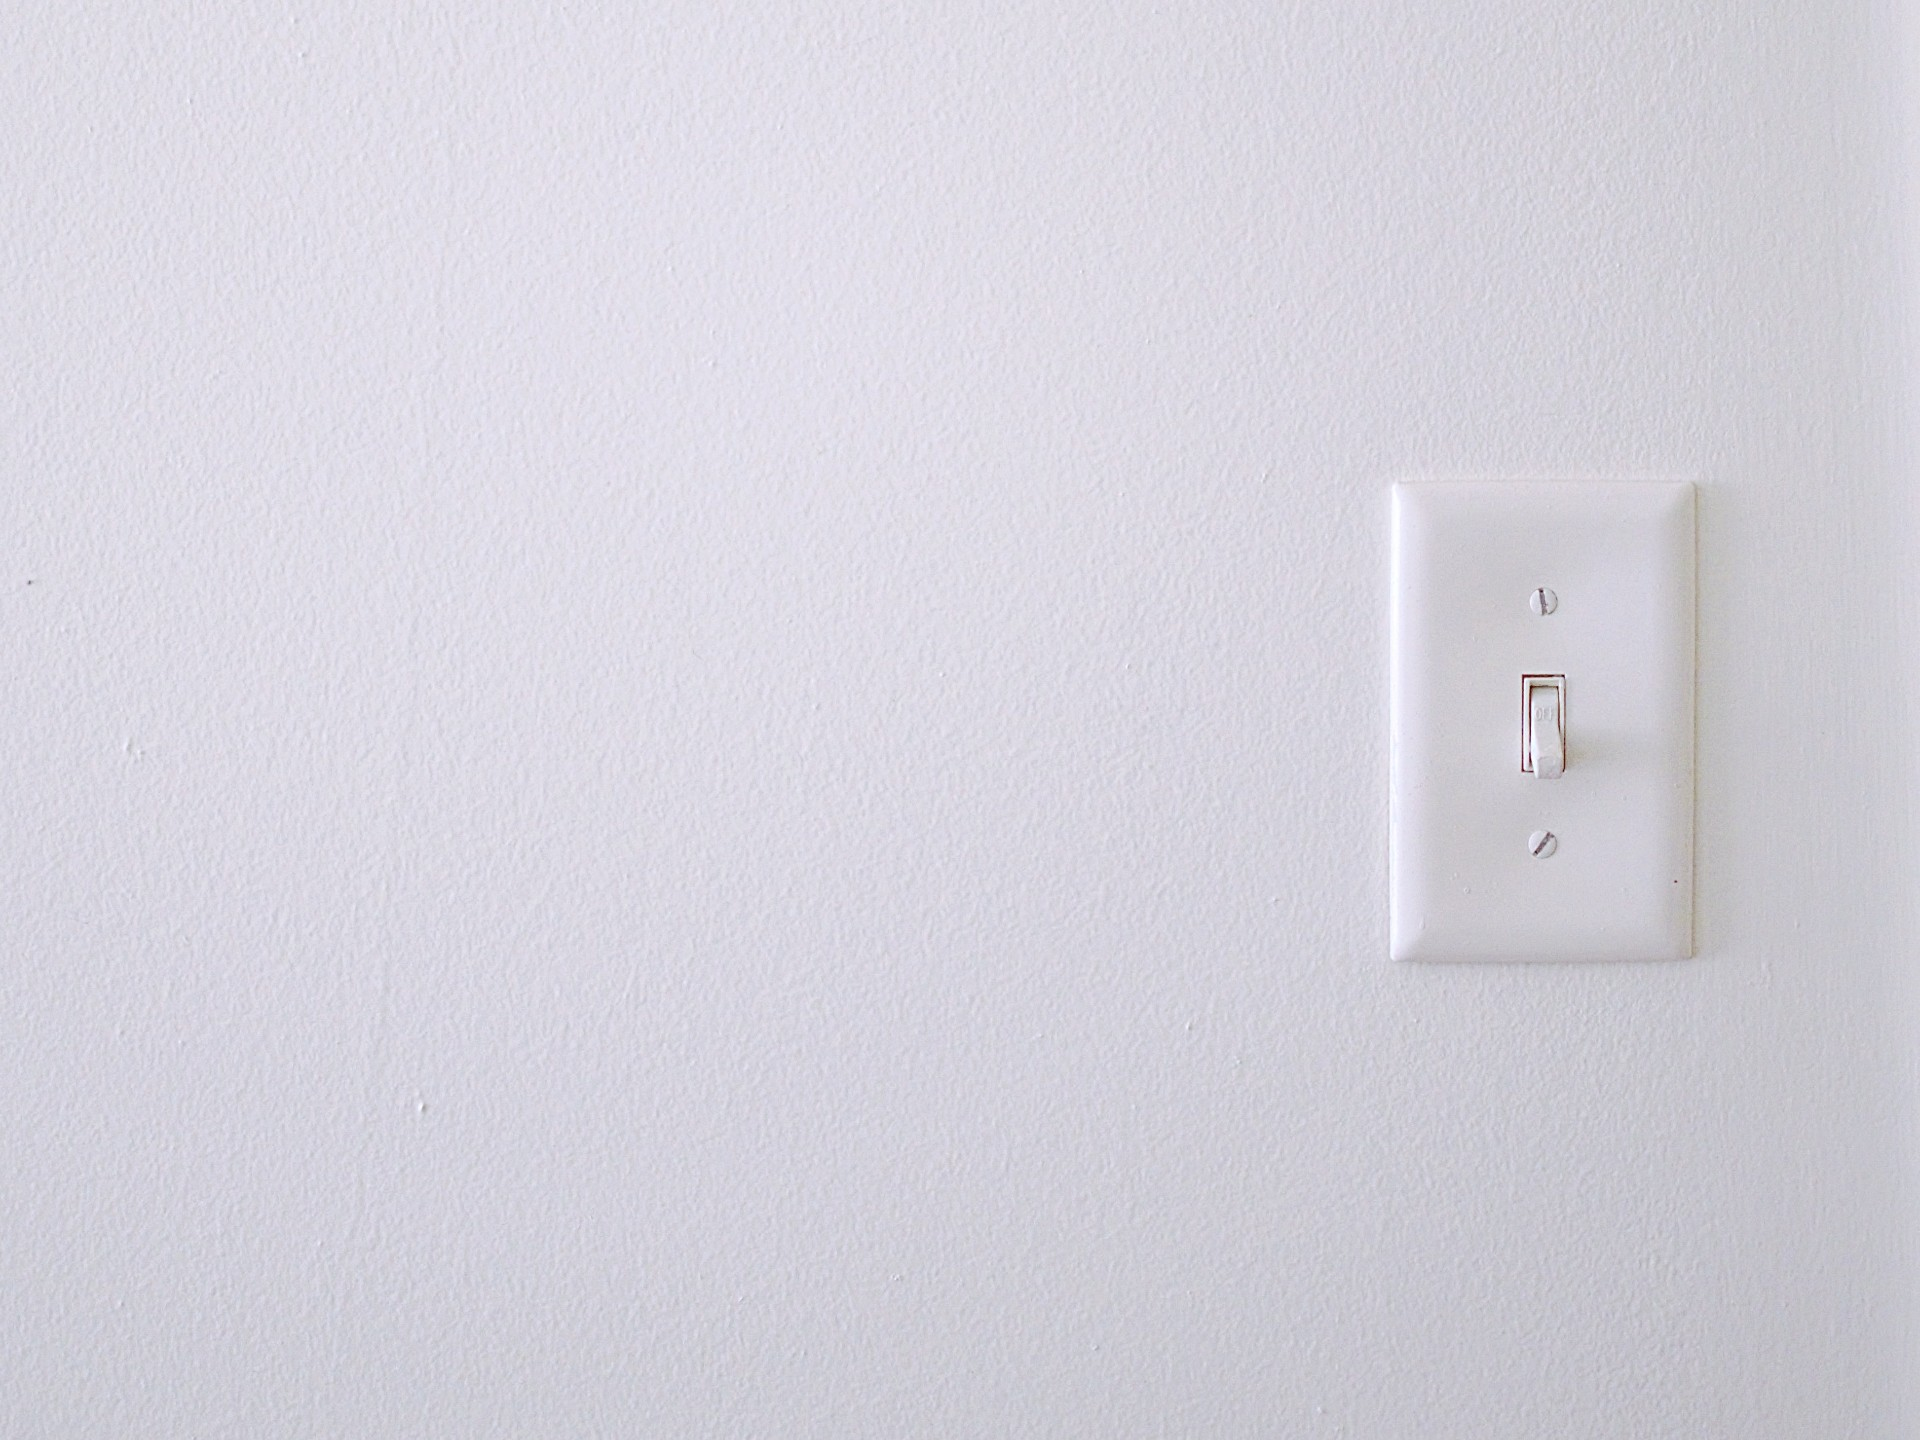 A light switch to represent surfaces often forgotten about in terms of wiping with antibacterial wipes.